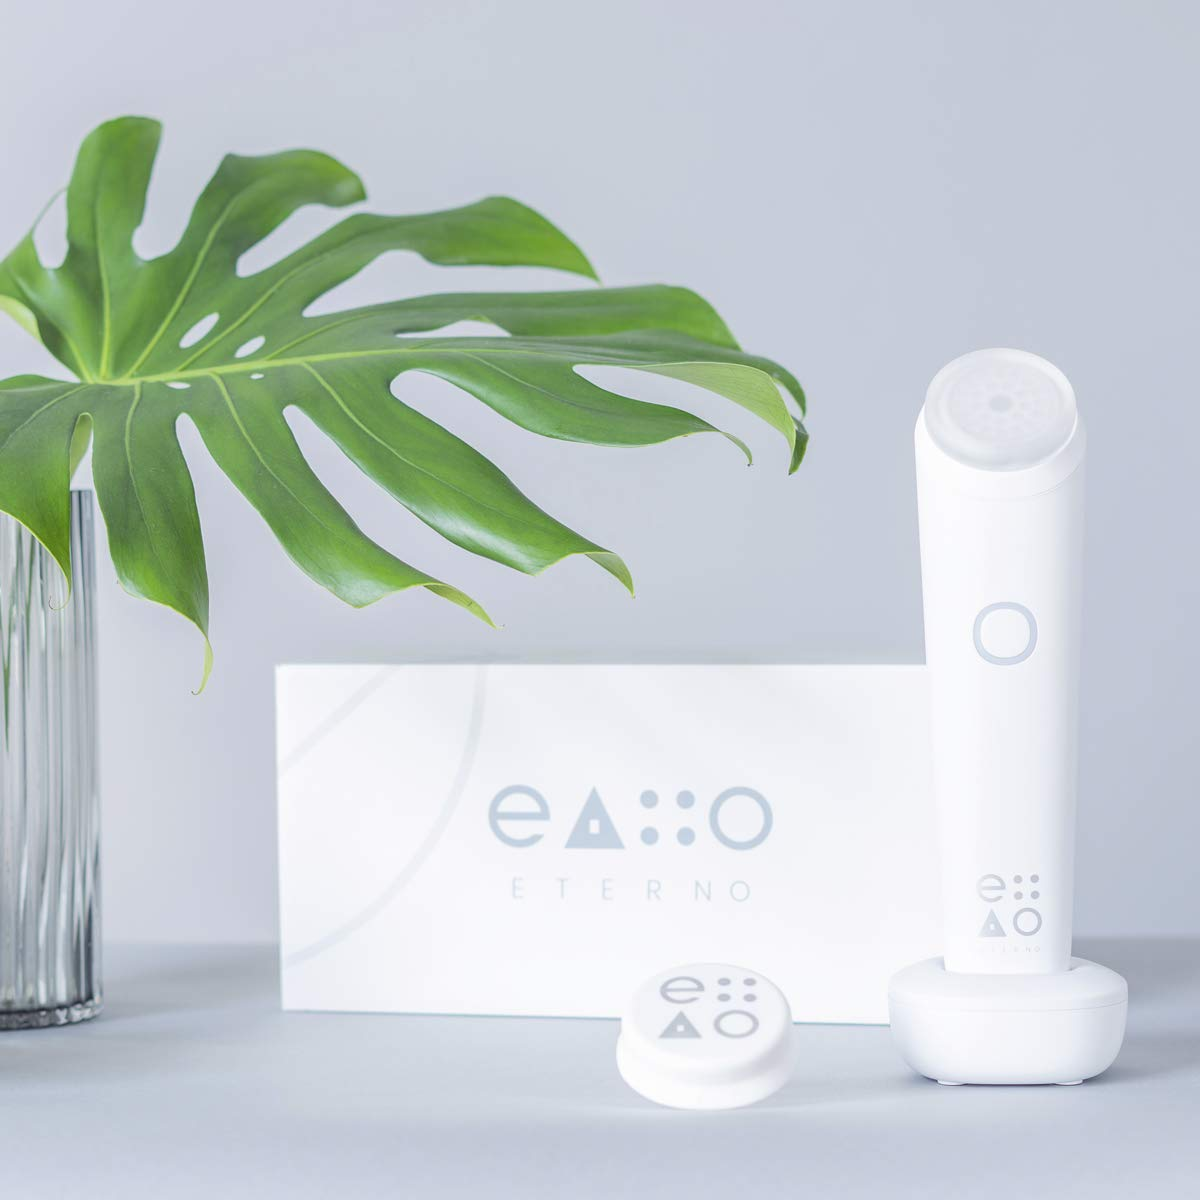 Eterno LED Anti-Aging At Home Device